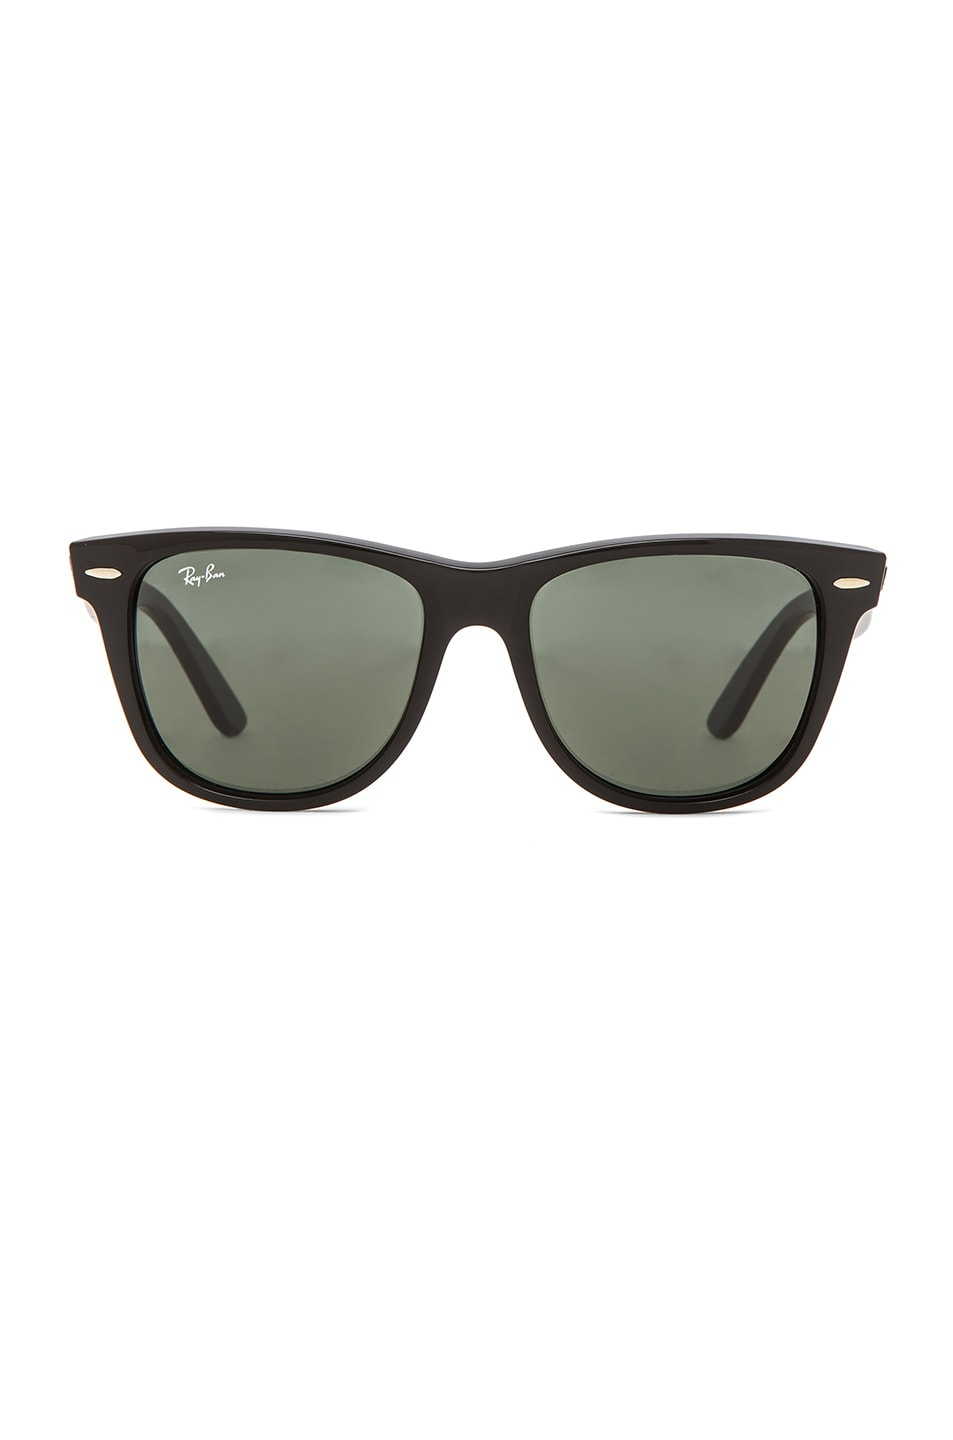 Image 1 of Ray-Ban Wayfarer Sunglasses in Black